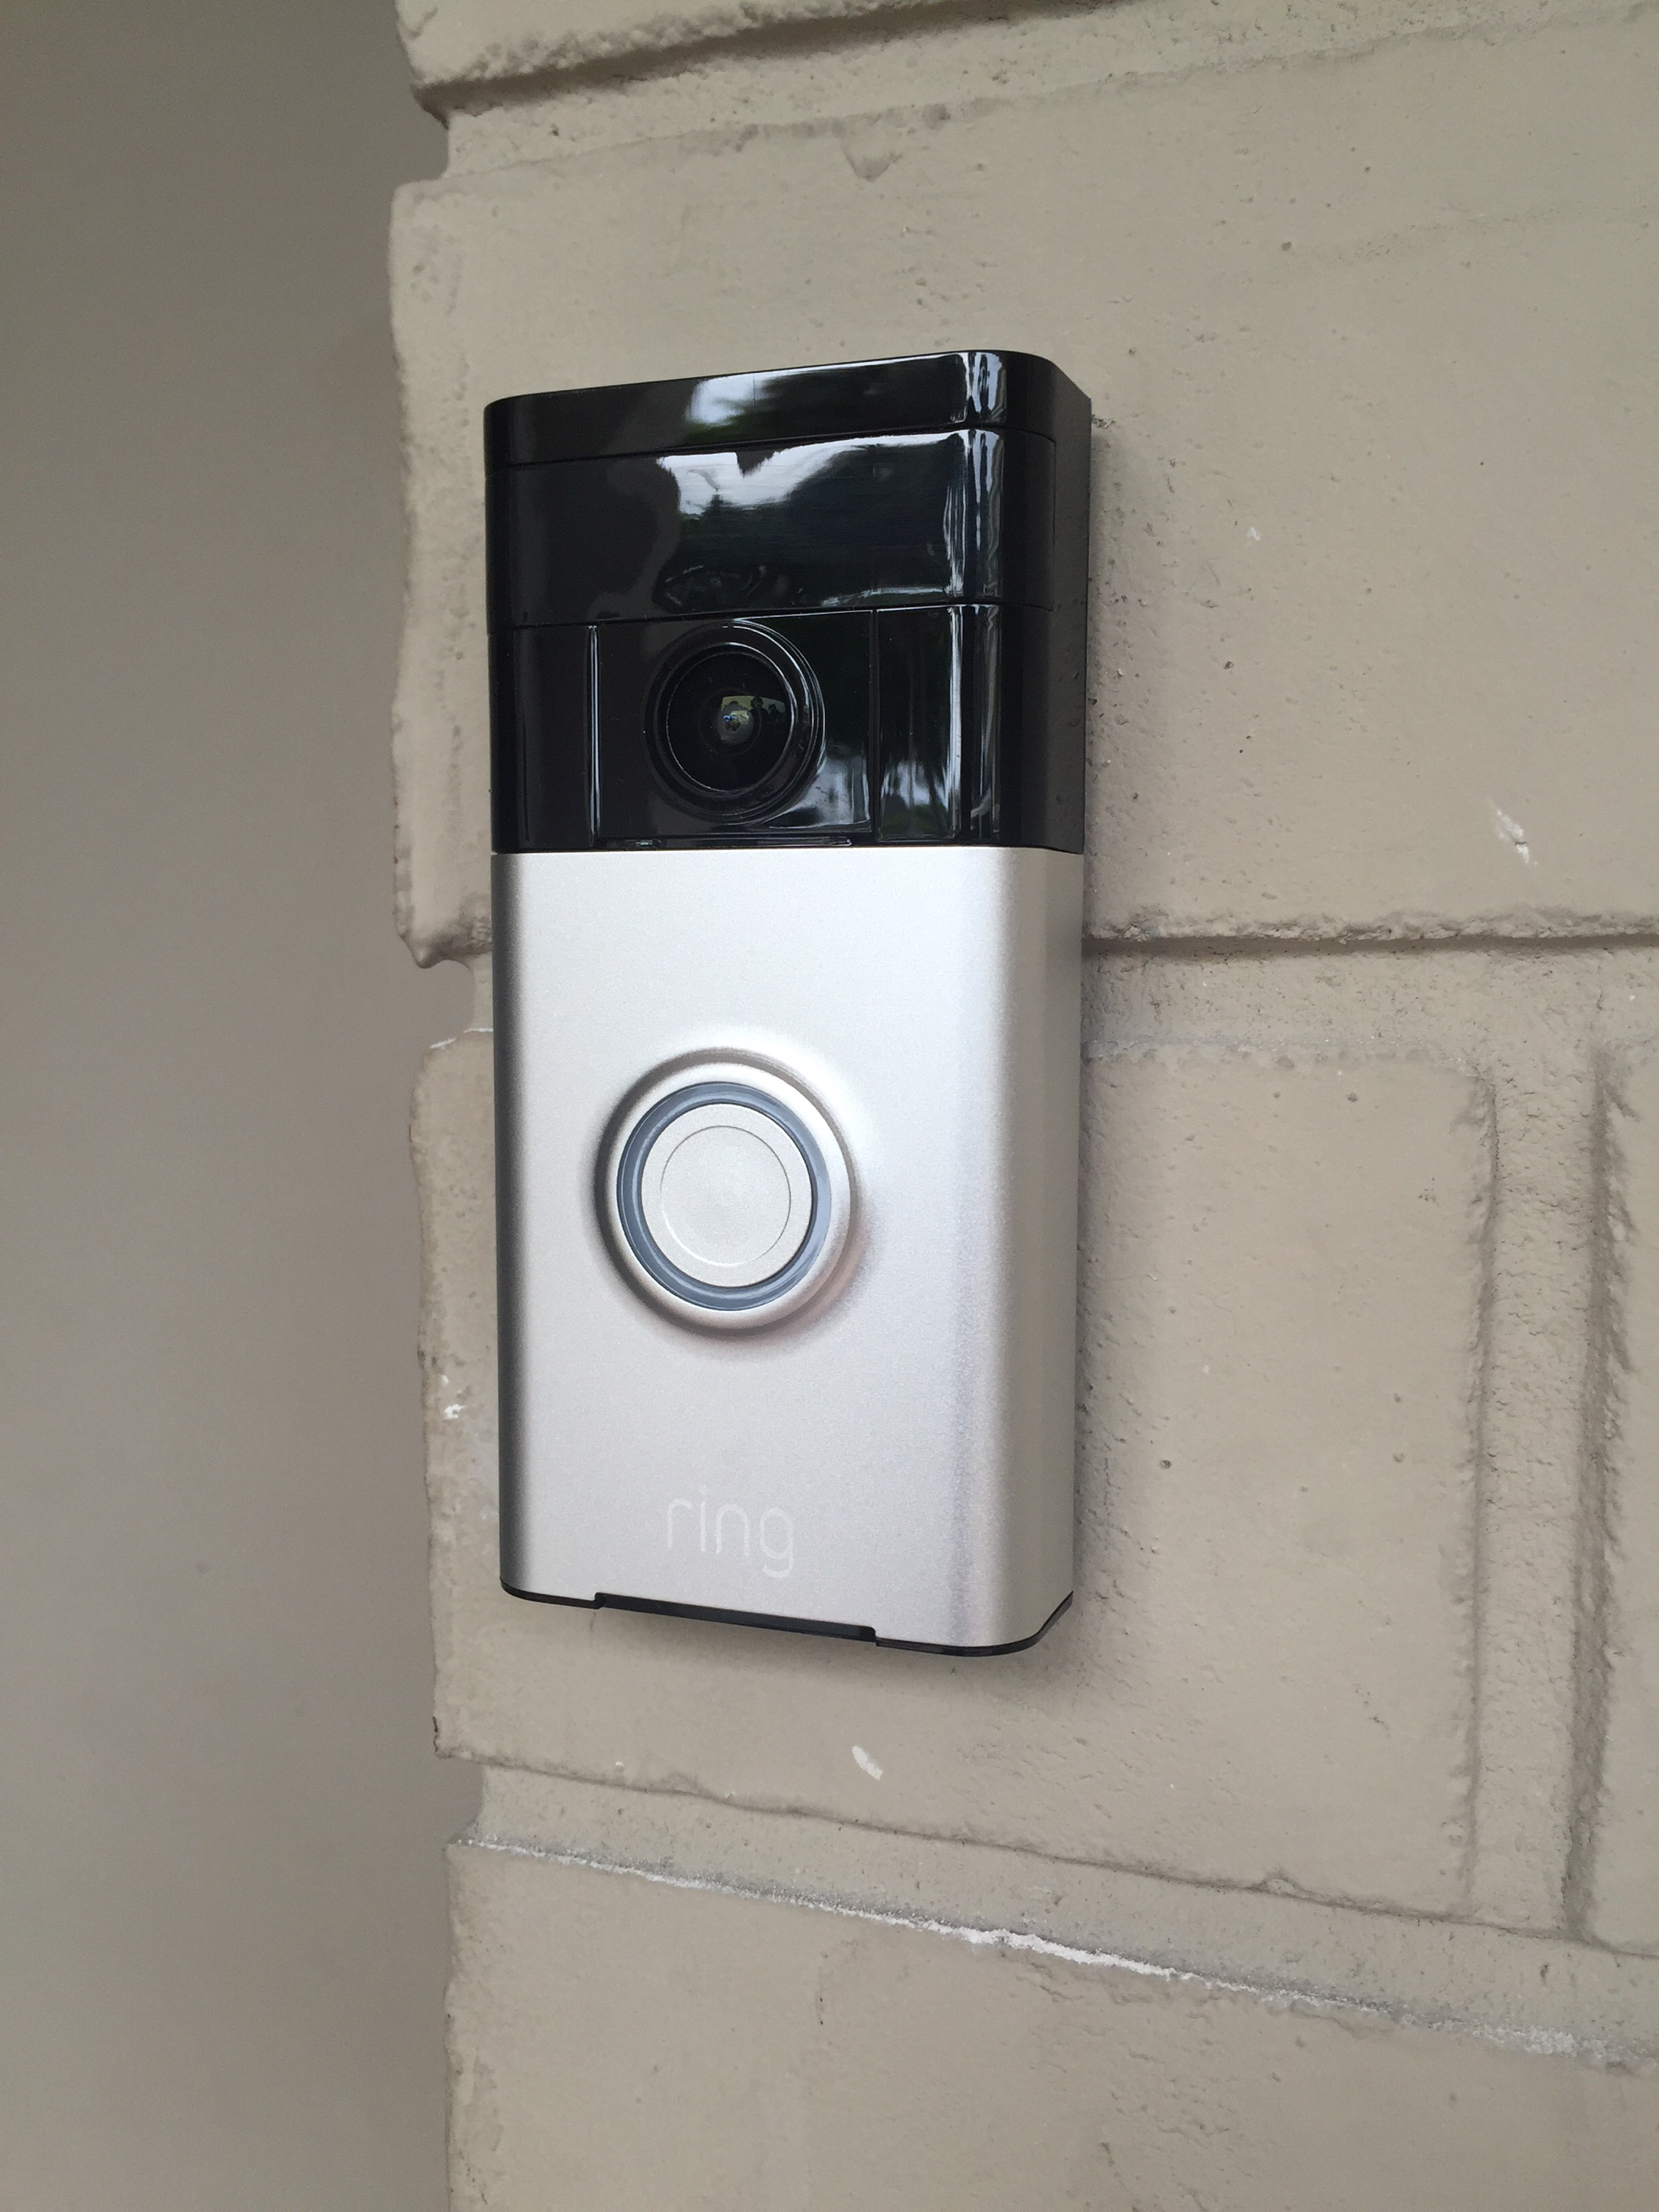 How To Replace Ring Doorbell Battery